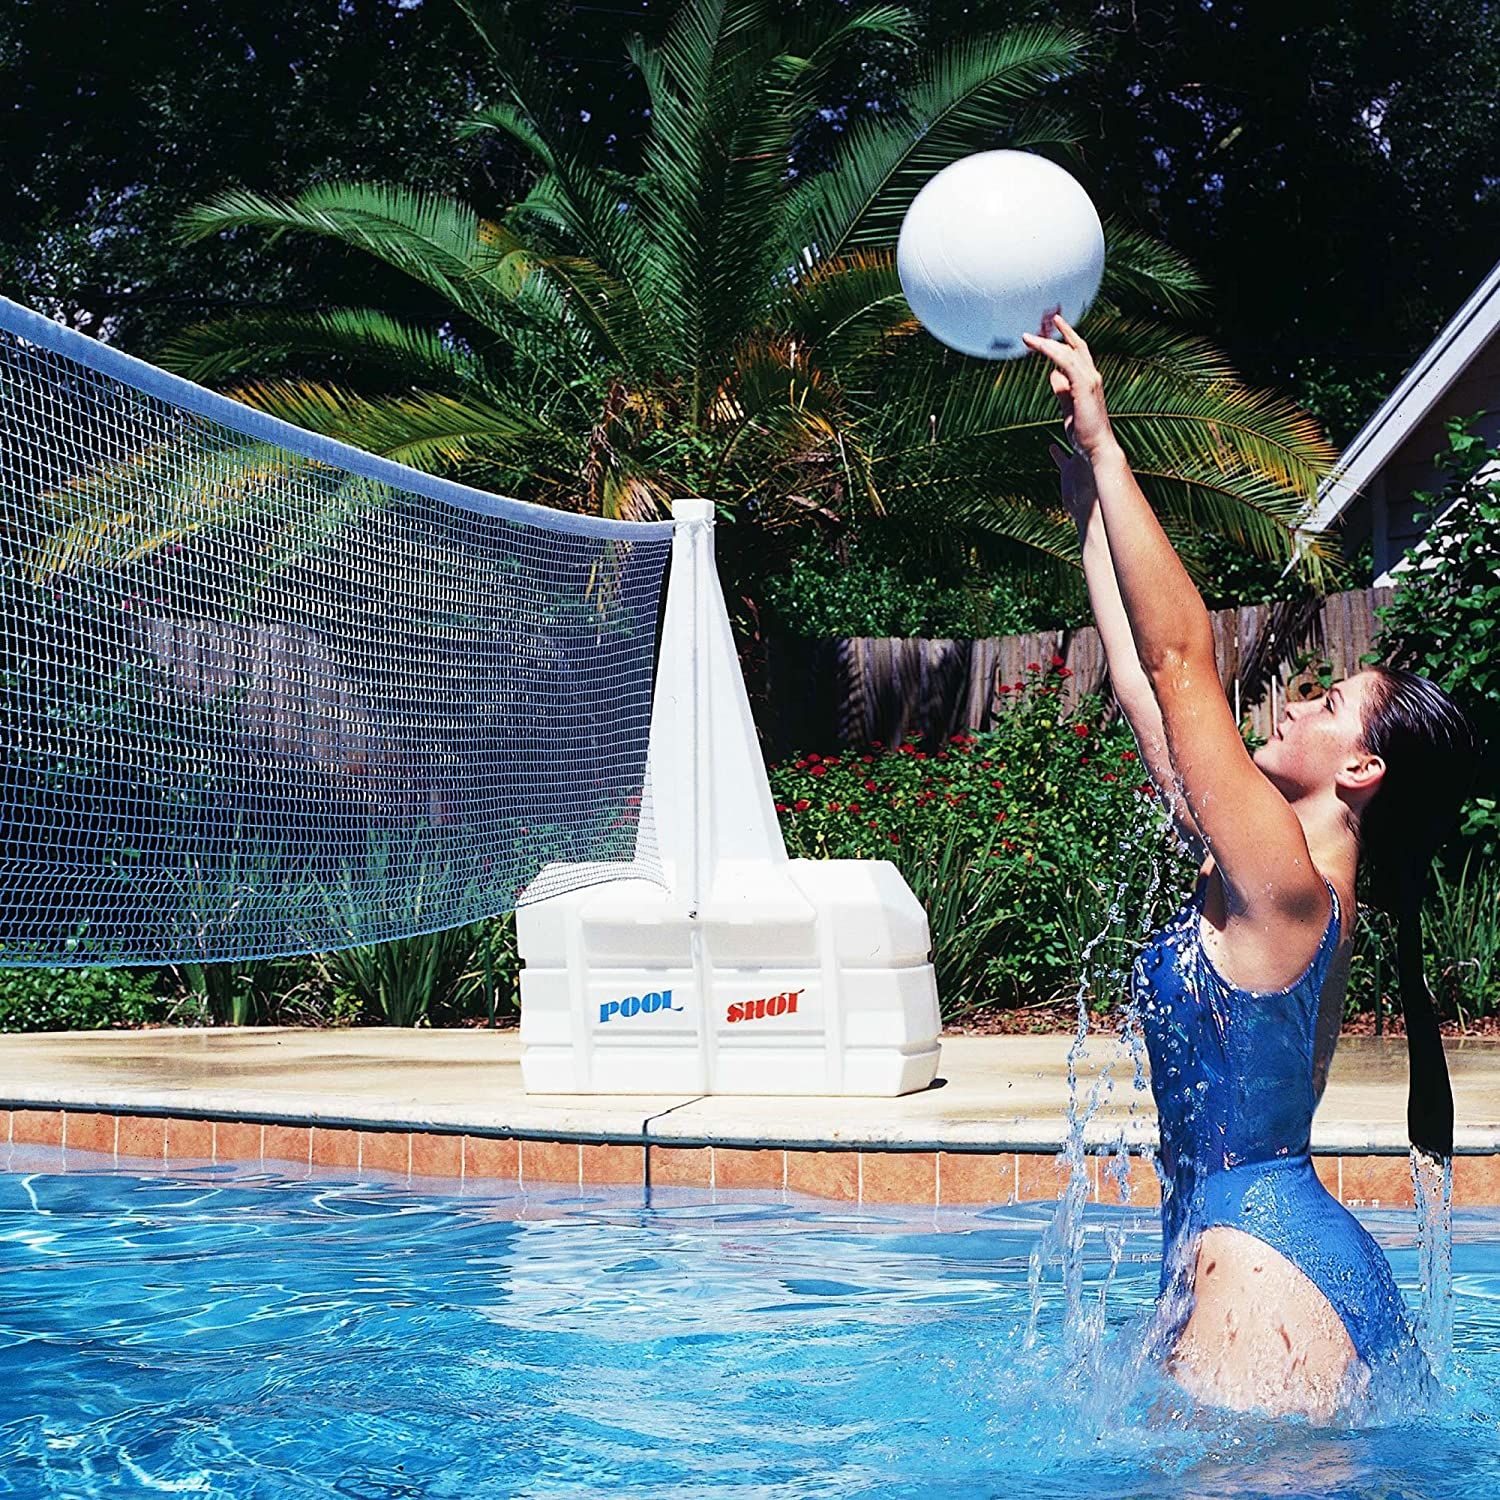 Amazon Com Pool Shot Super Water Volley Swimming Pool Volleyball Net Toys Games